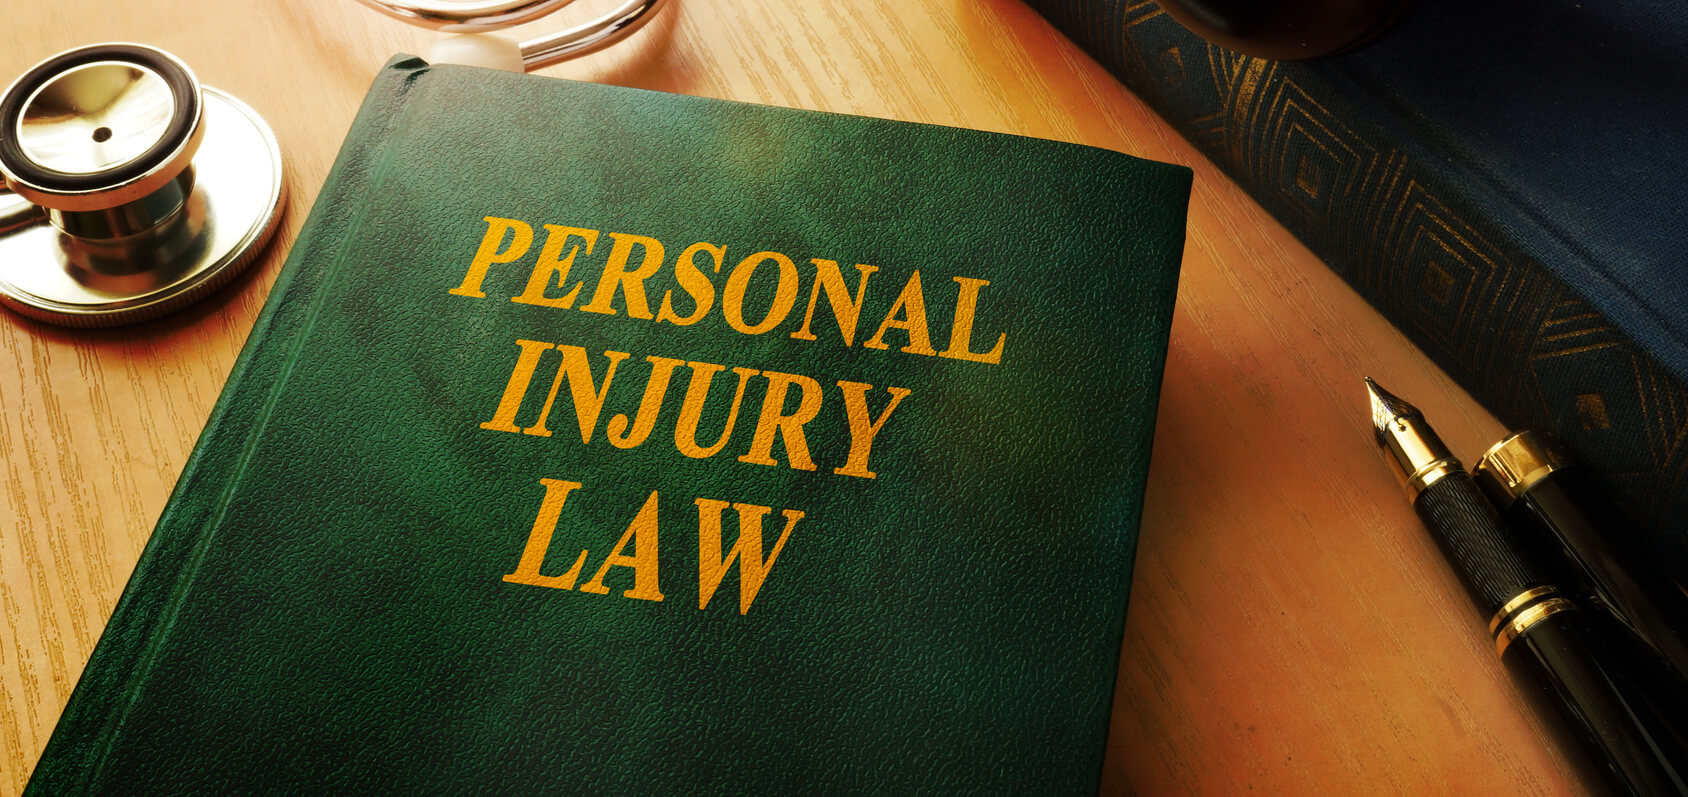 Personal Injury Lawyer Dallas